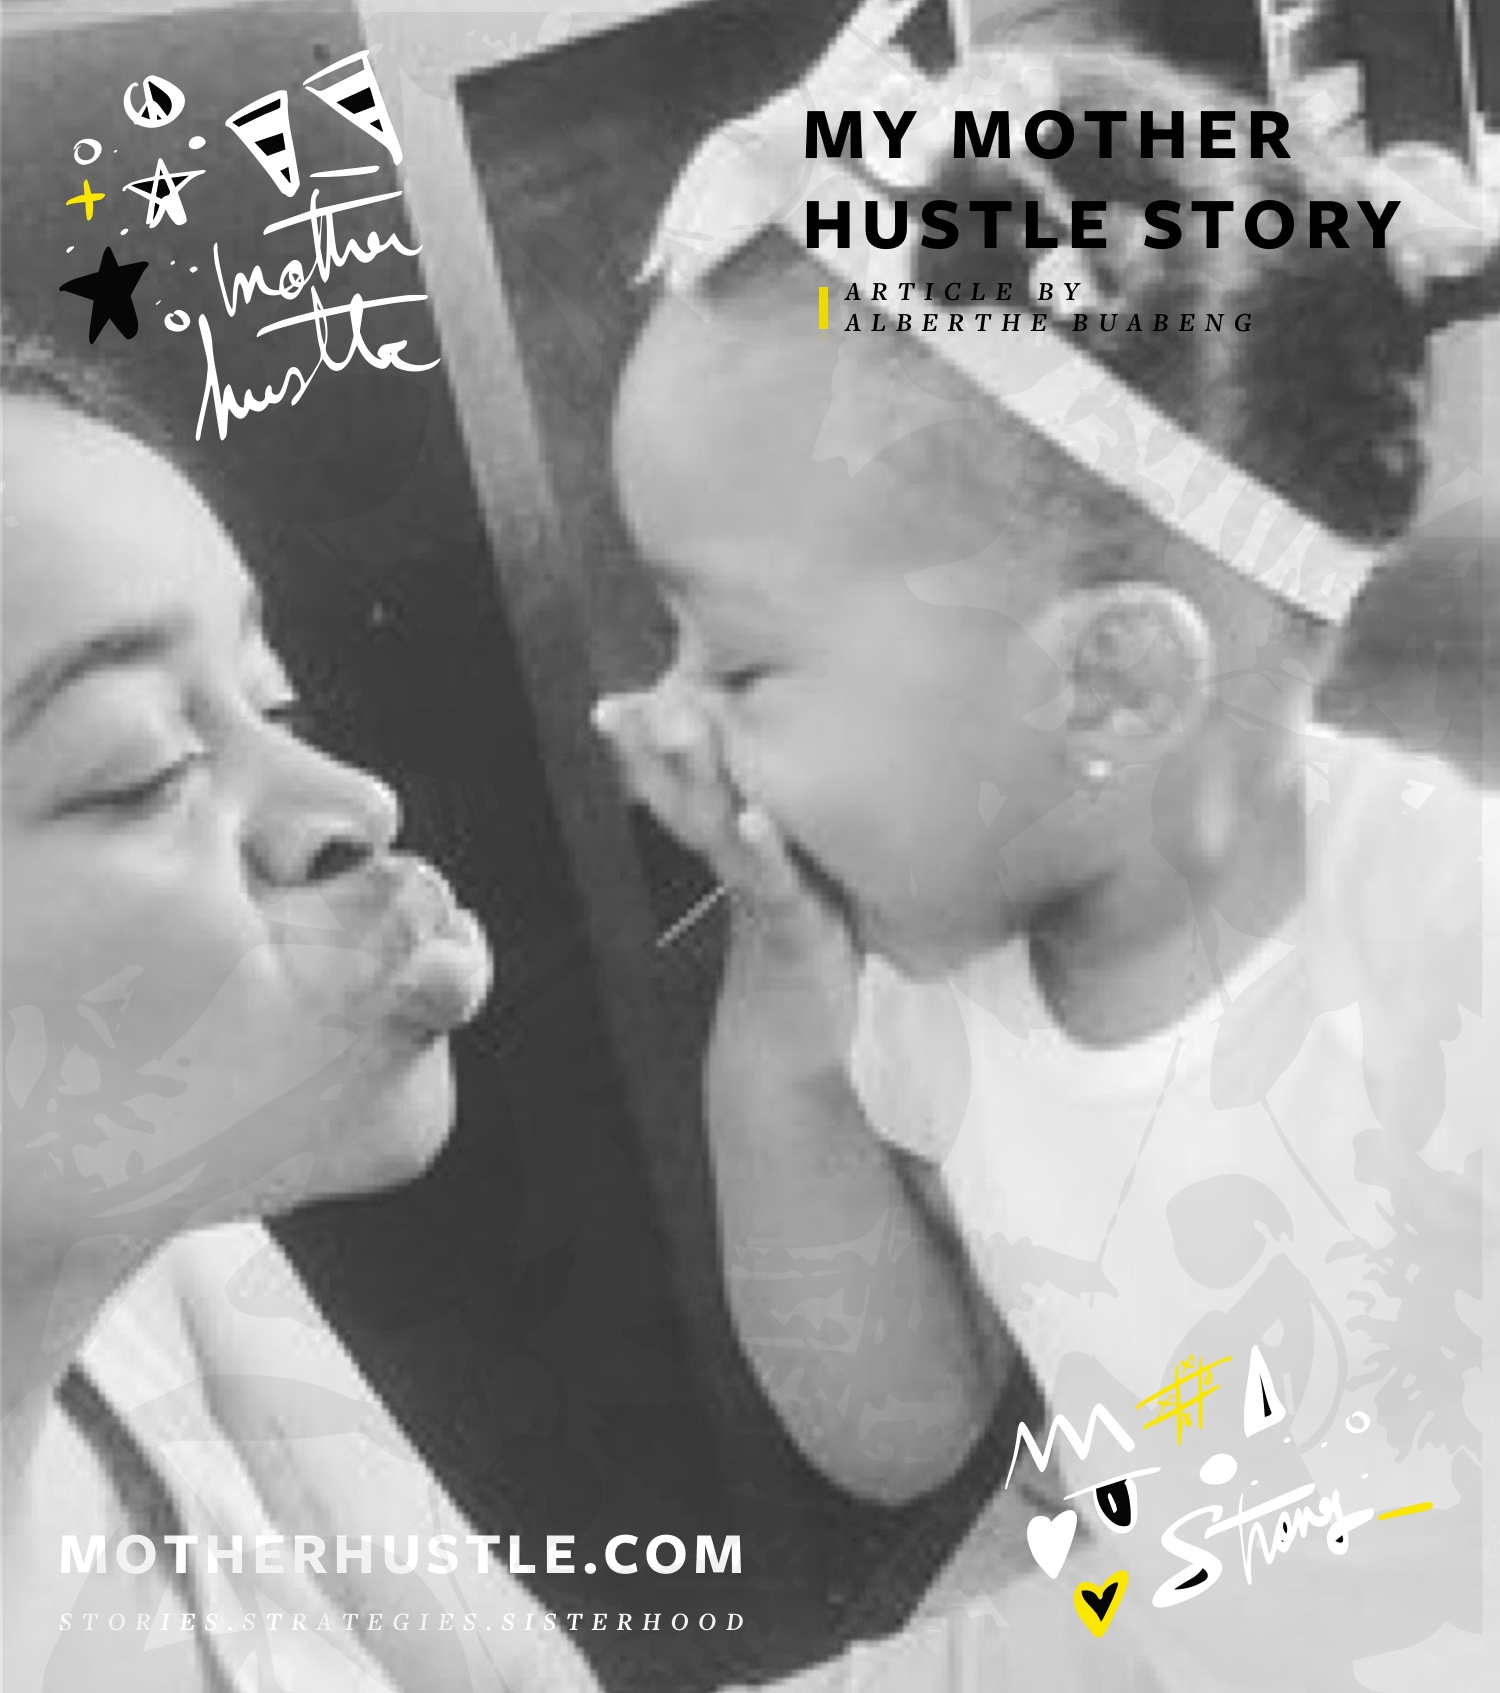 MyMotherHustle Story - Alberthe Buabeng